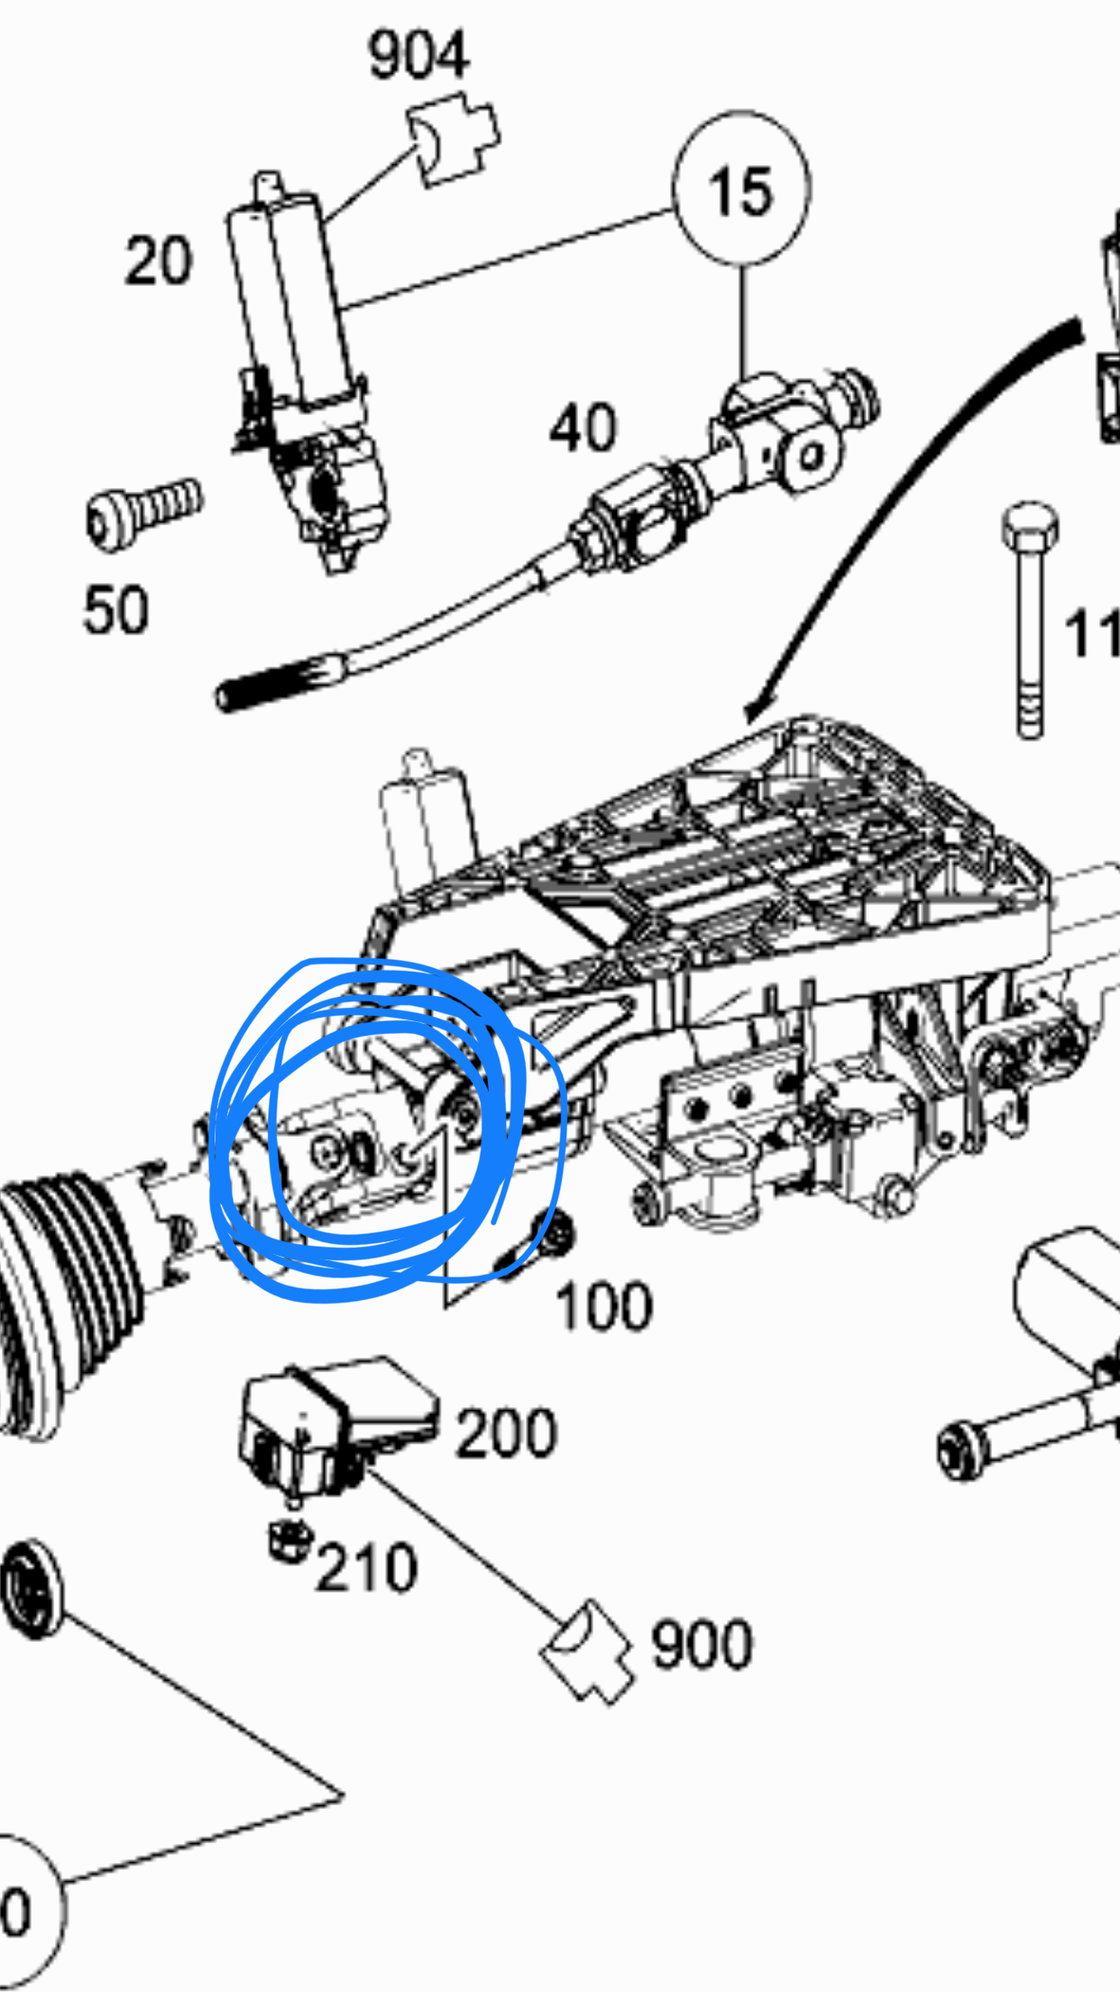 W204 Steering Wheel Lock Remove To Repair Diy Forums Toyota Oemstyle Aftermarket Fog Light Wiring Diagram Balancing Act Okay So I Was Able Fix The Situation Now Im Putting Everything Back Together And Unable Stick Assembly Into